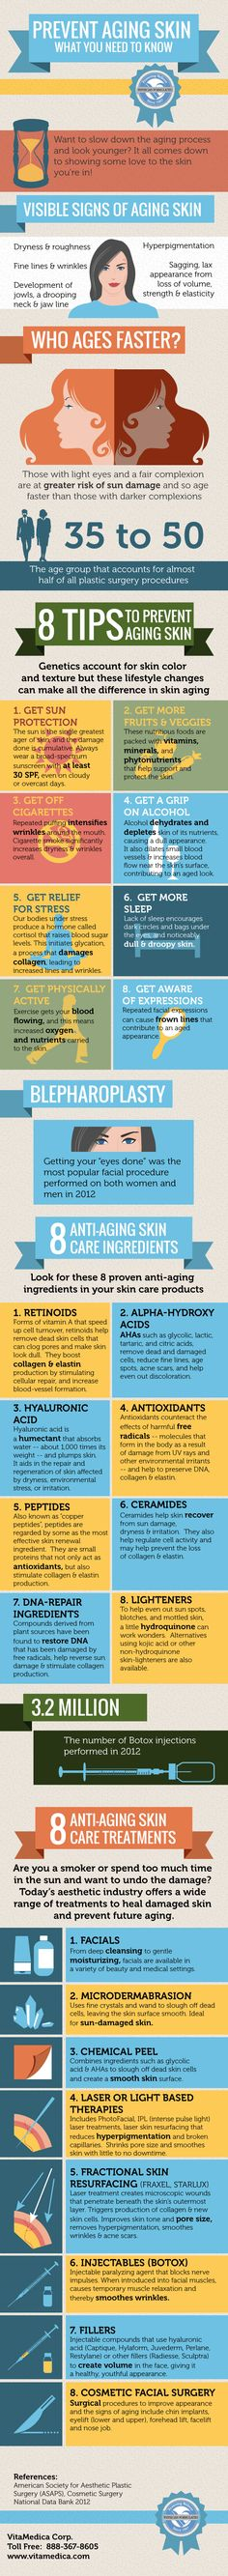 Infographic: Prevent Aging Skin What You Need To Know